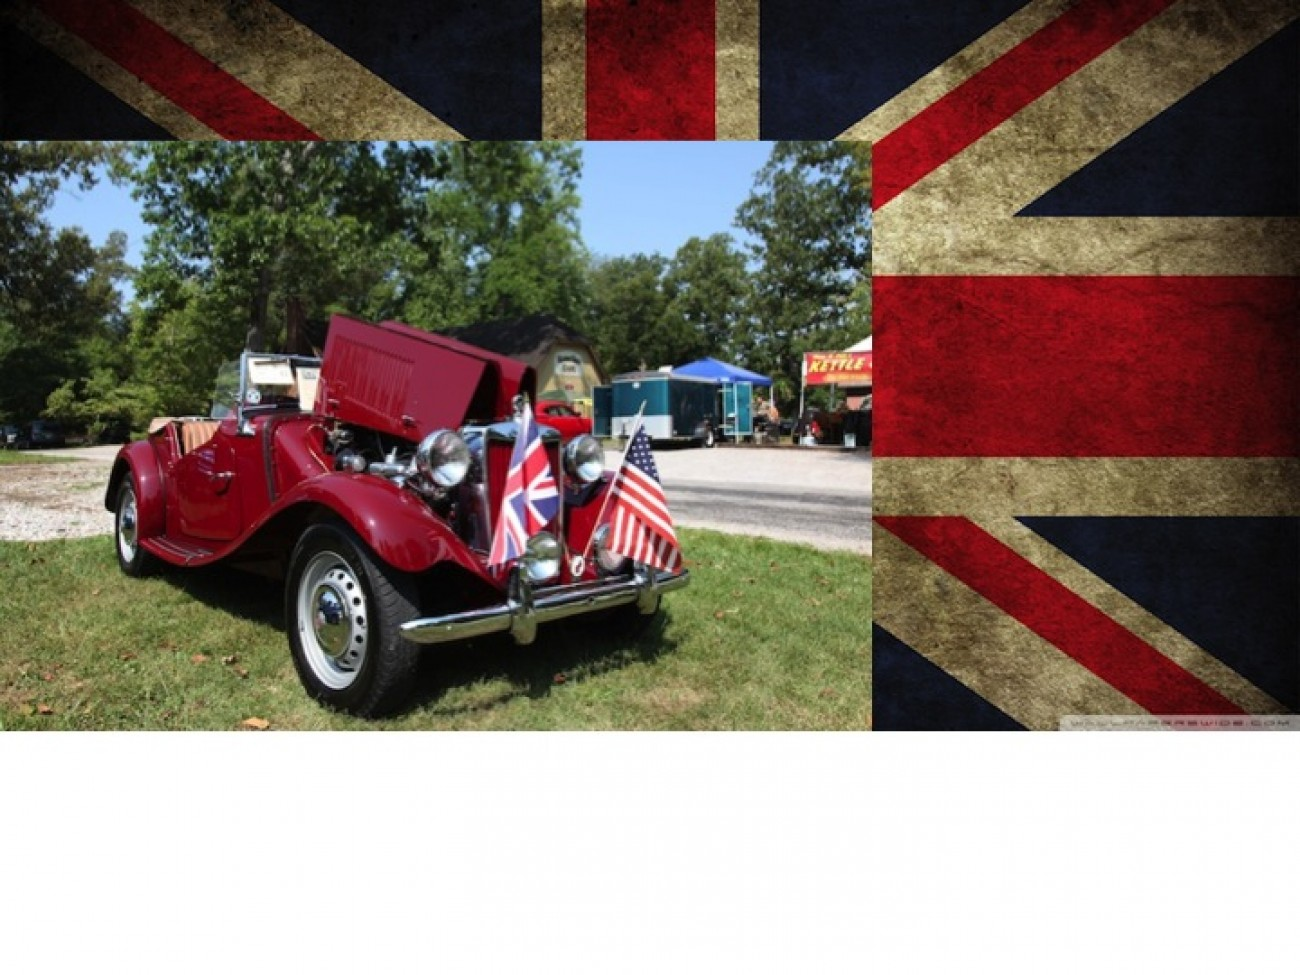 Come enjoy the British Motorcar Show!